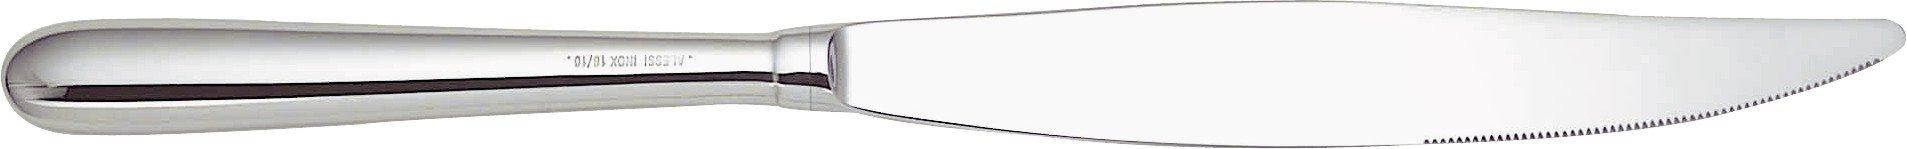 Alessi''Caccia'' Monobloc Dessert Knives in Steel Aisi 420 Mirror Polished (Set of 6), Silver by Alessi (Image #1)